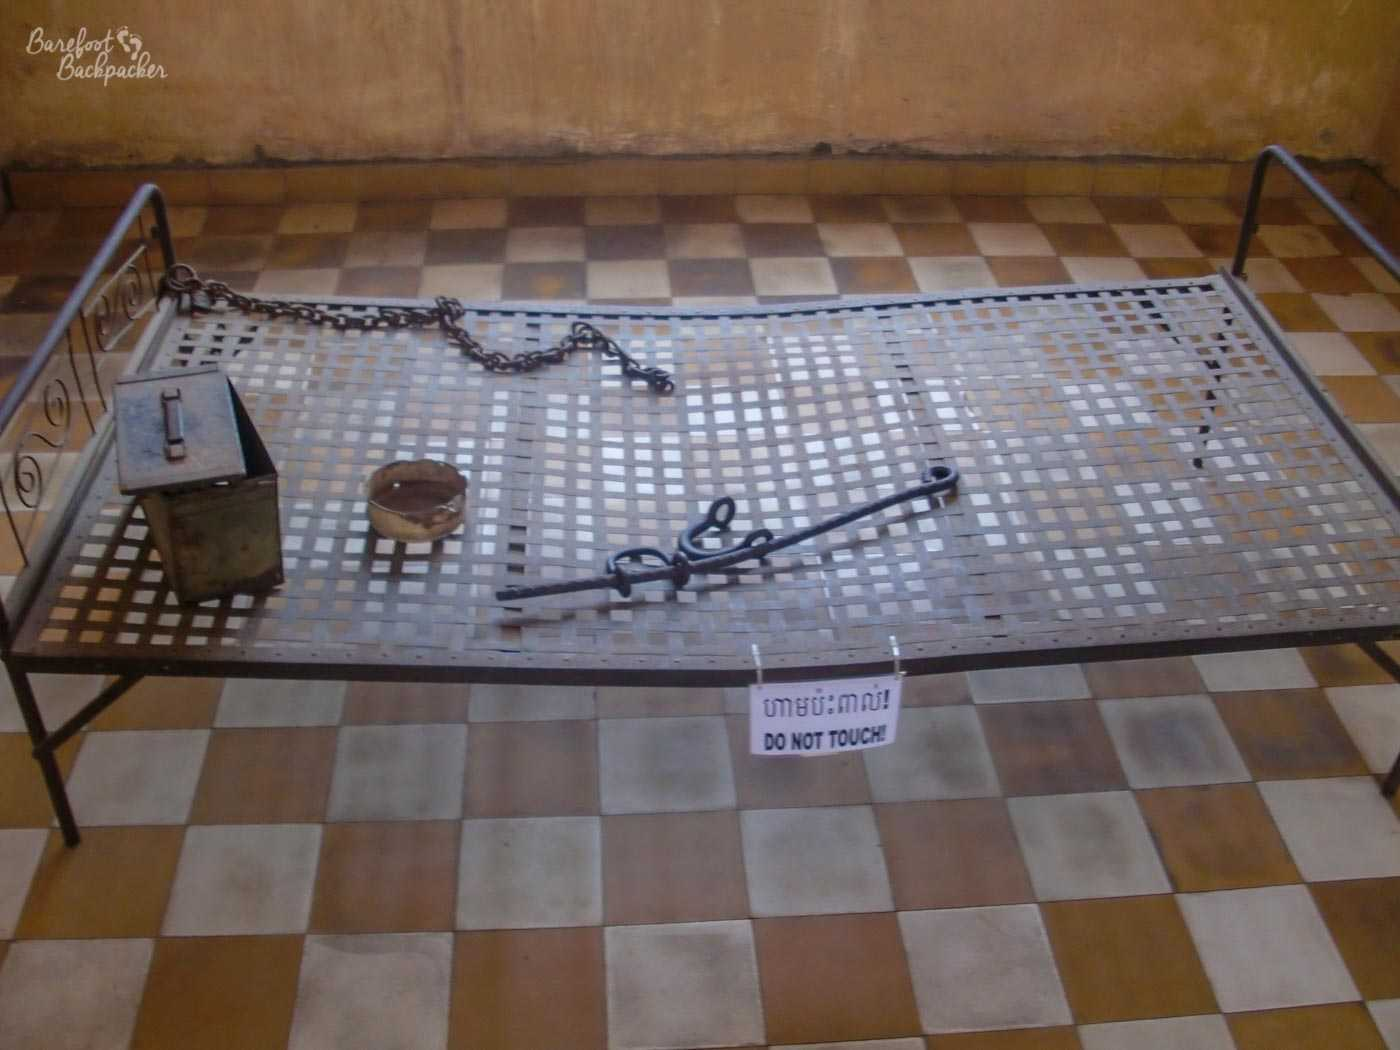 The bare frame of a metal bed in one of the larger rooms of Tuol Sleng (an old classroom, presumably), on a chequered tile floor.  A chain is attached to one of the corners of the frame. On the bed are three other objects – a metal box, a circular rusted ashtray, and a long metal object with a hook at one end and what looks like a clamp at the other.